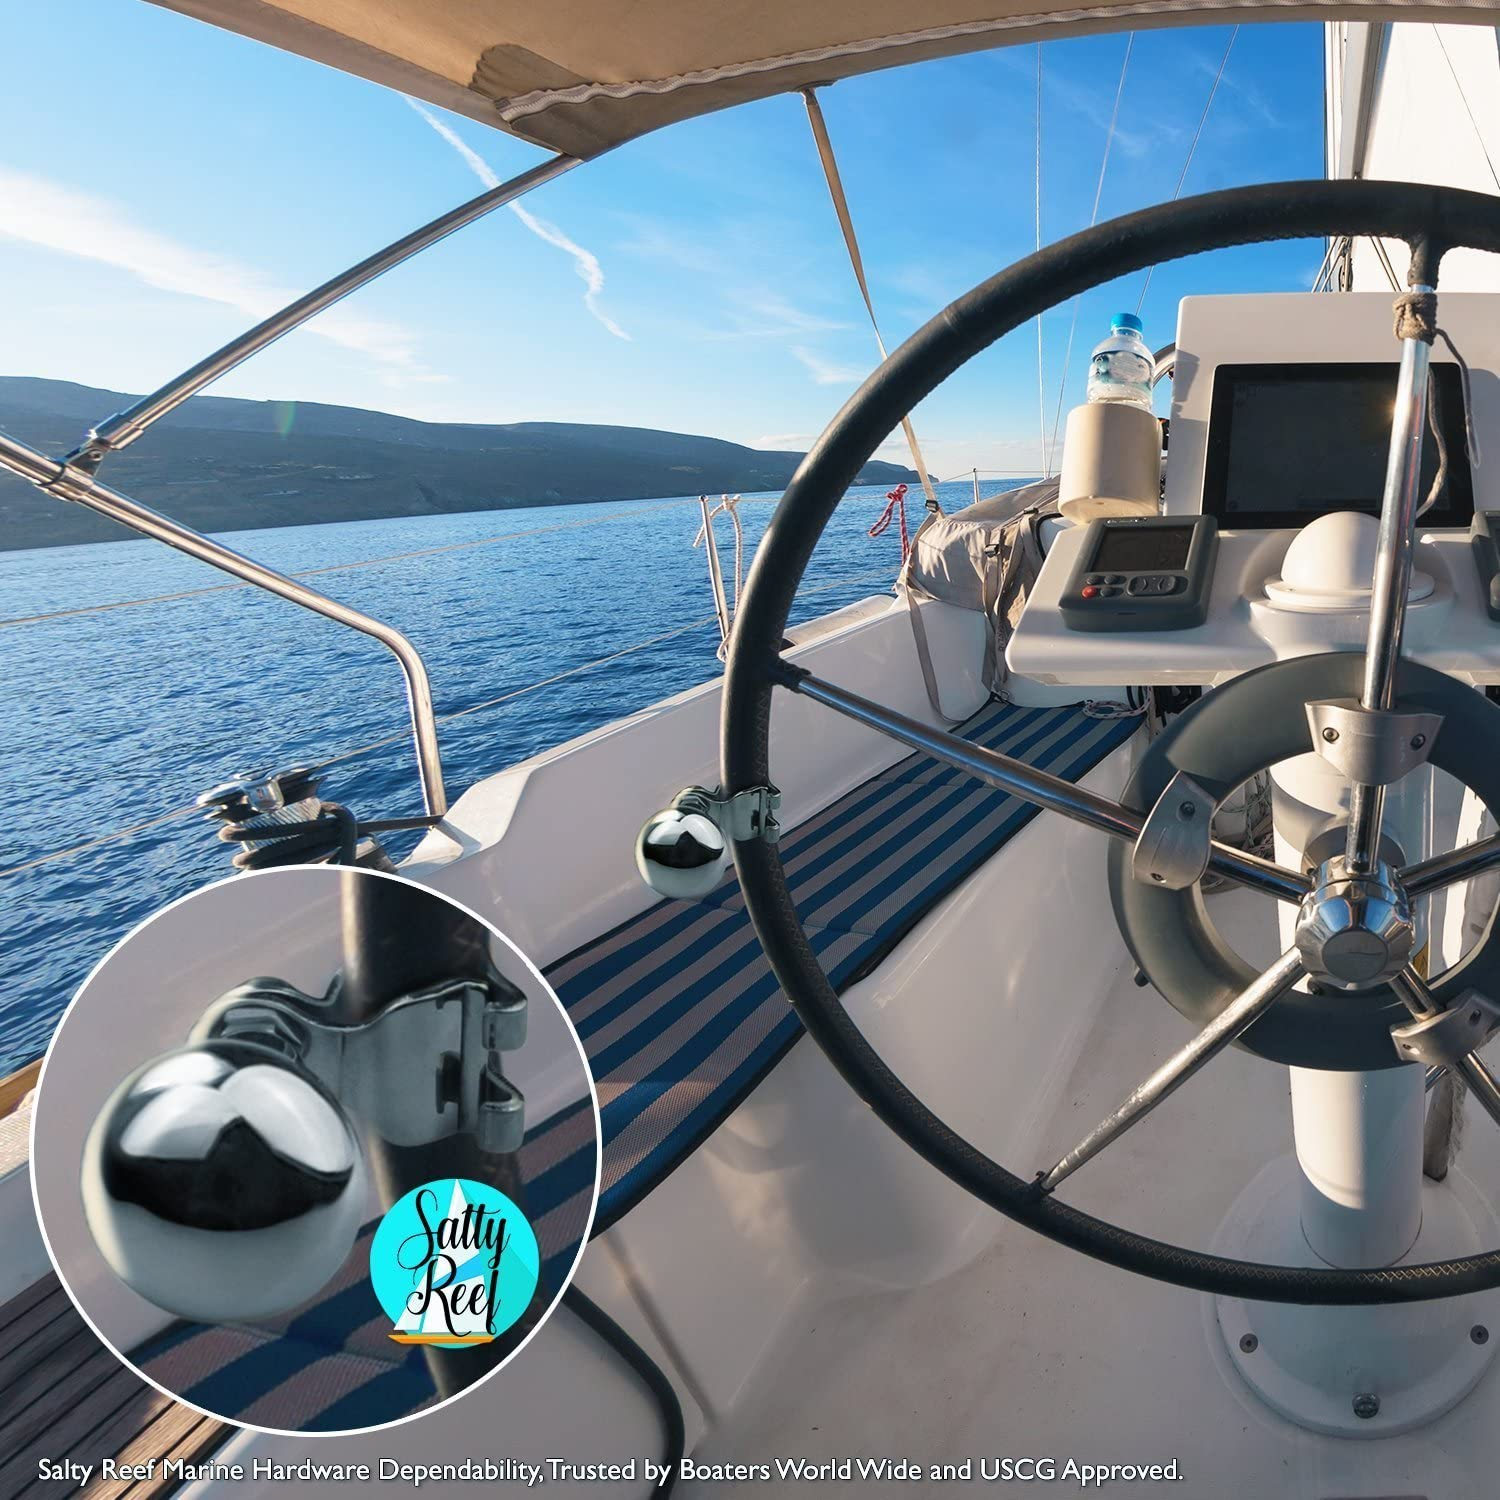 Steering Wheel Suicide Knob Fits Steering wheels from 5//8 to 1 ... Universal AISI 316 Marine Grade Stainless Steel